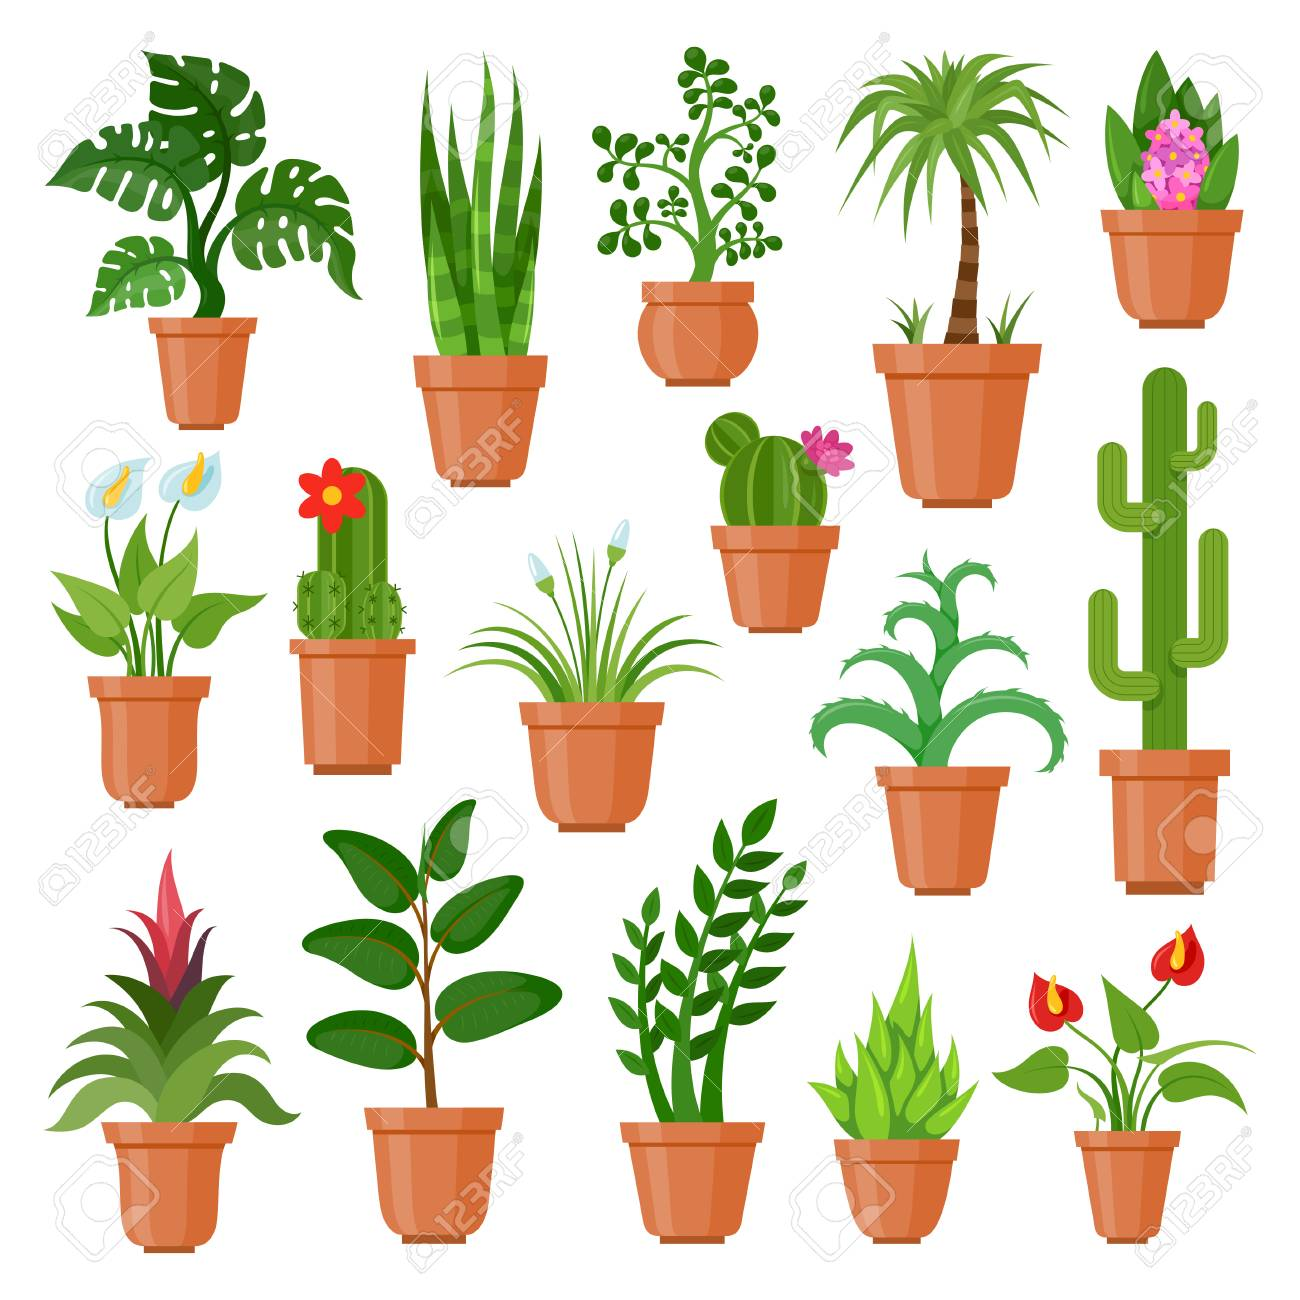 House Pot Plants Green Indoor Houseplants For Home And Office Royalty Free Cliparts Vectors And Stock Illustration Image 93404092